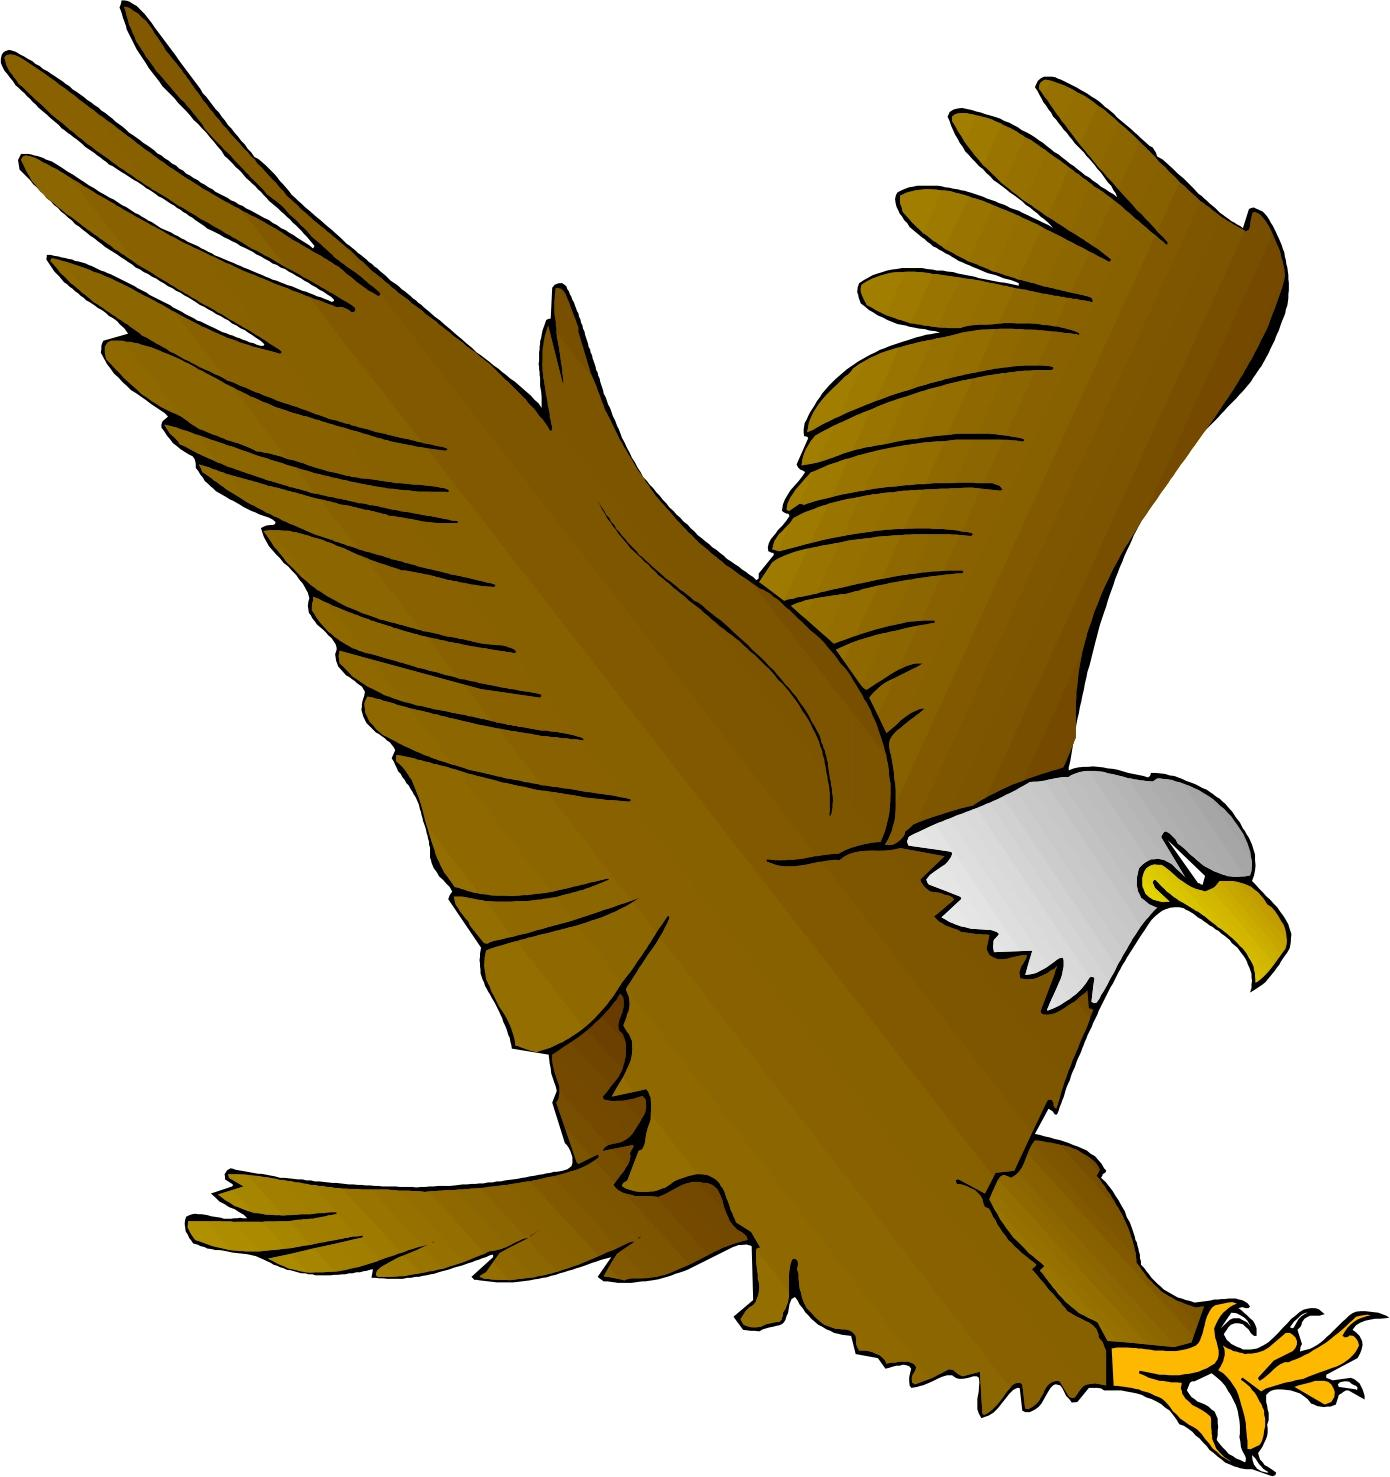 1390x1477 Best Bald Eagle Showing Post Clip Art Drawing